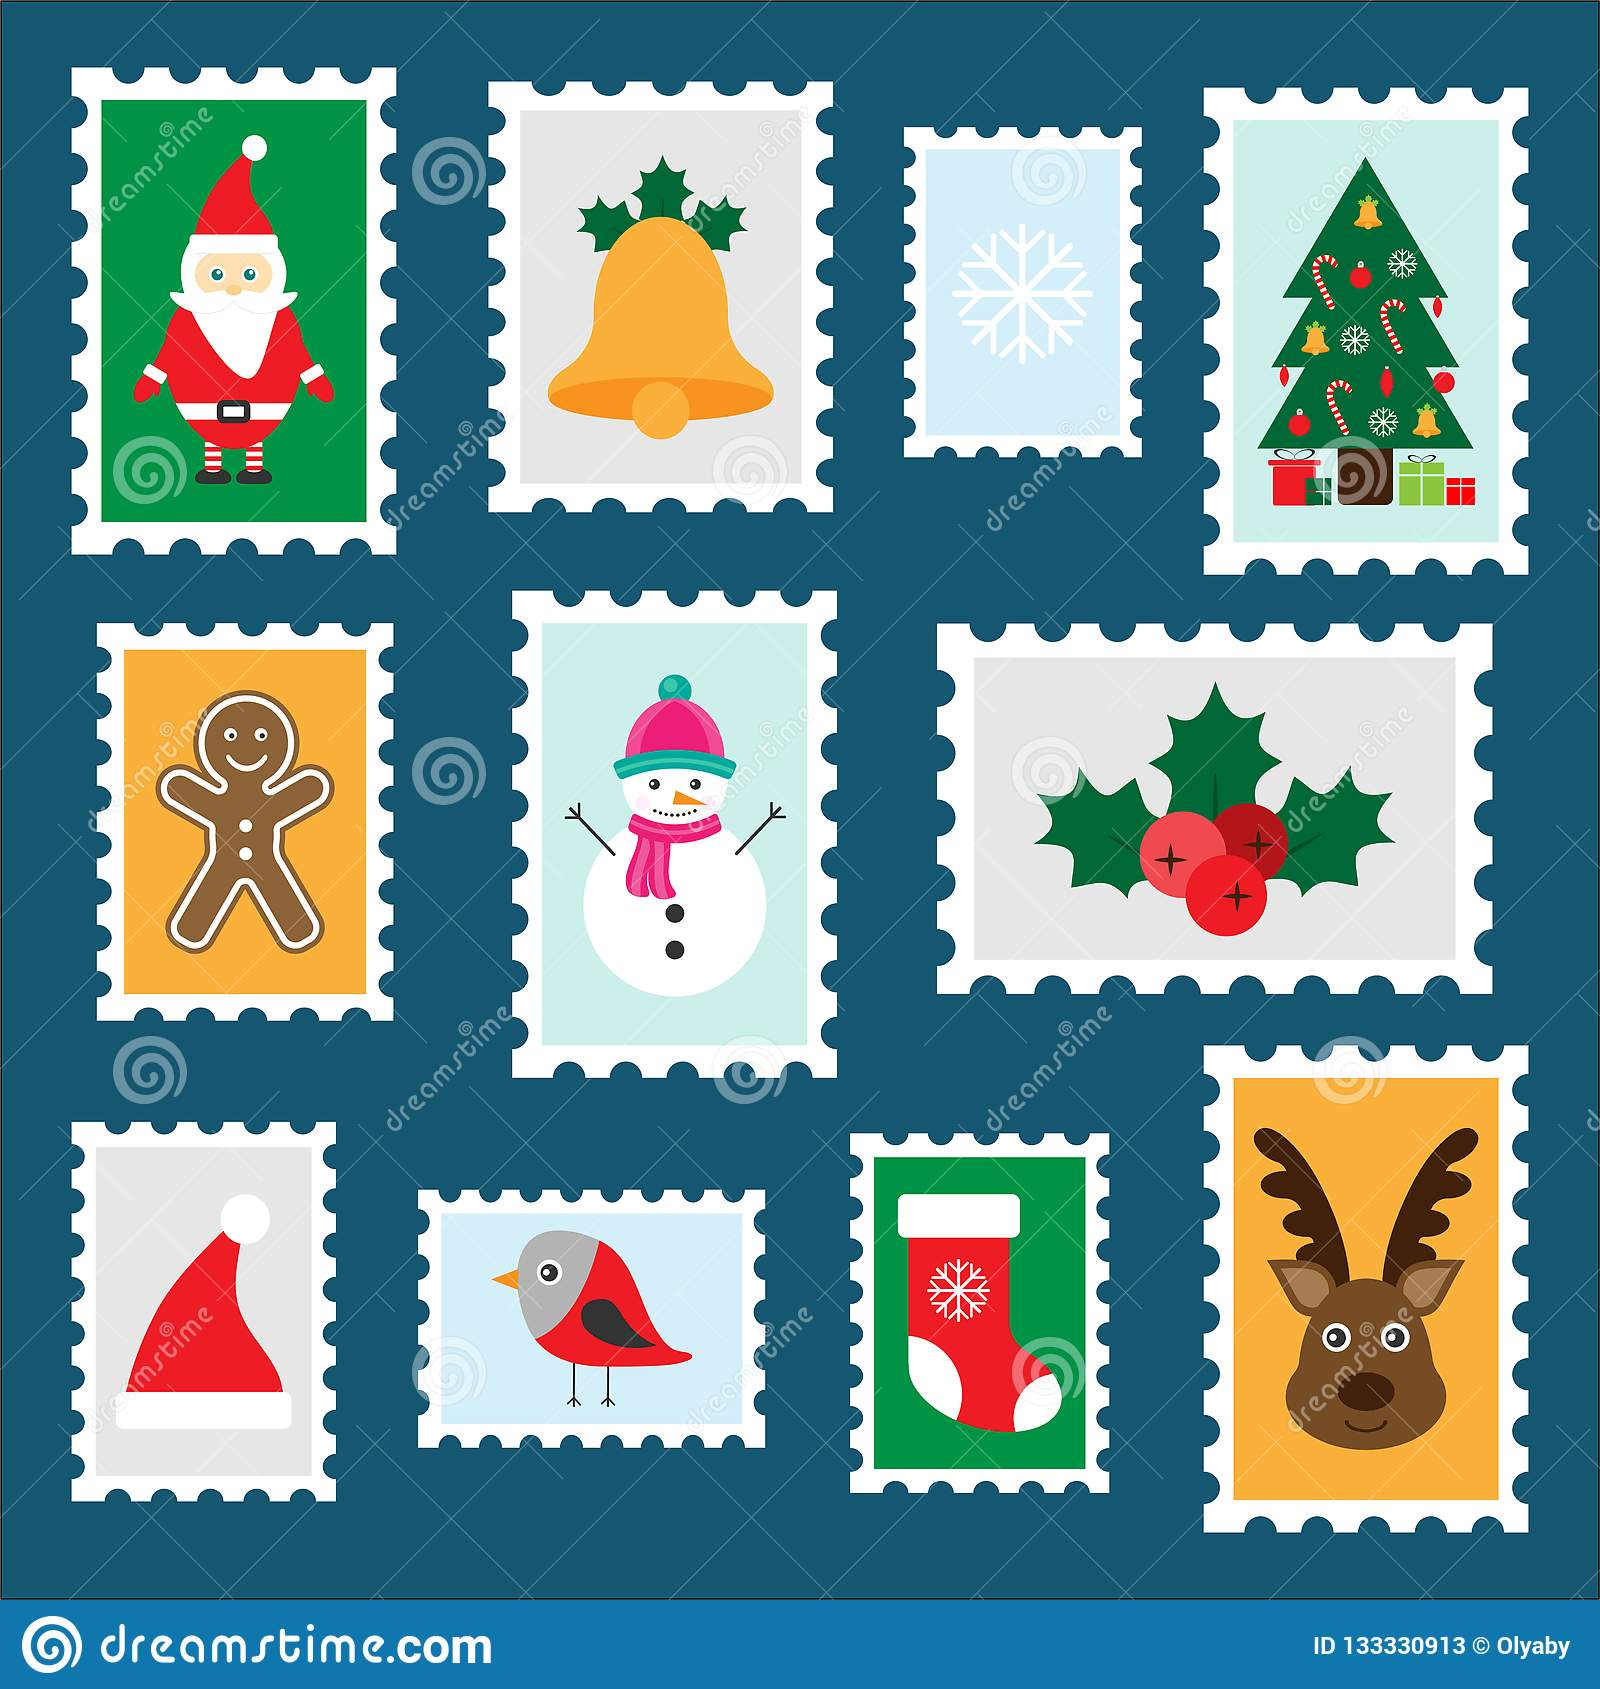 Christmas Preschool.Different Colorful Christmas Postage Stamps For Children